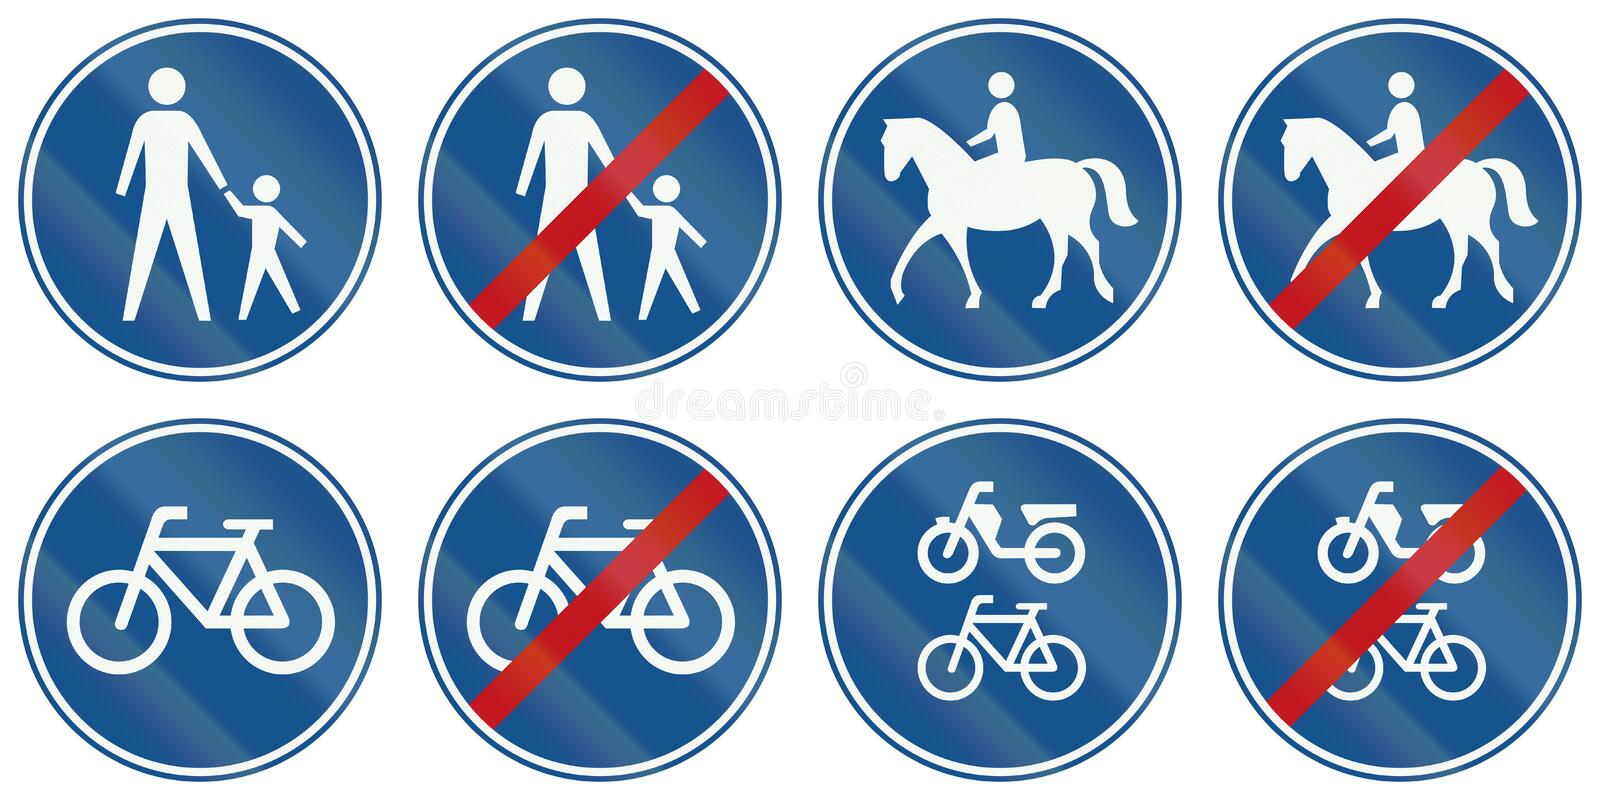 Collection of Dutch regulatory road signs royalty free illustration